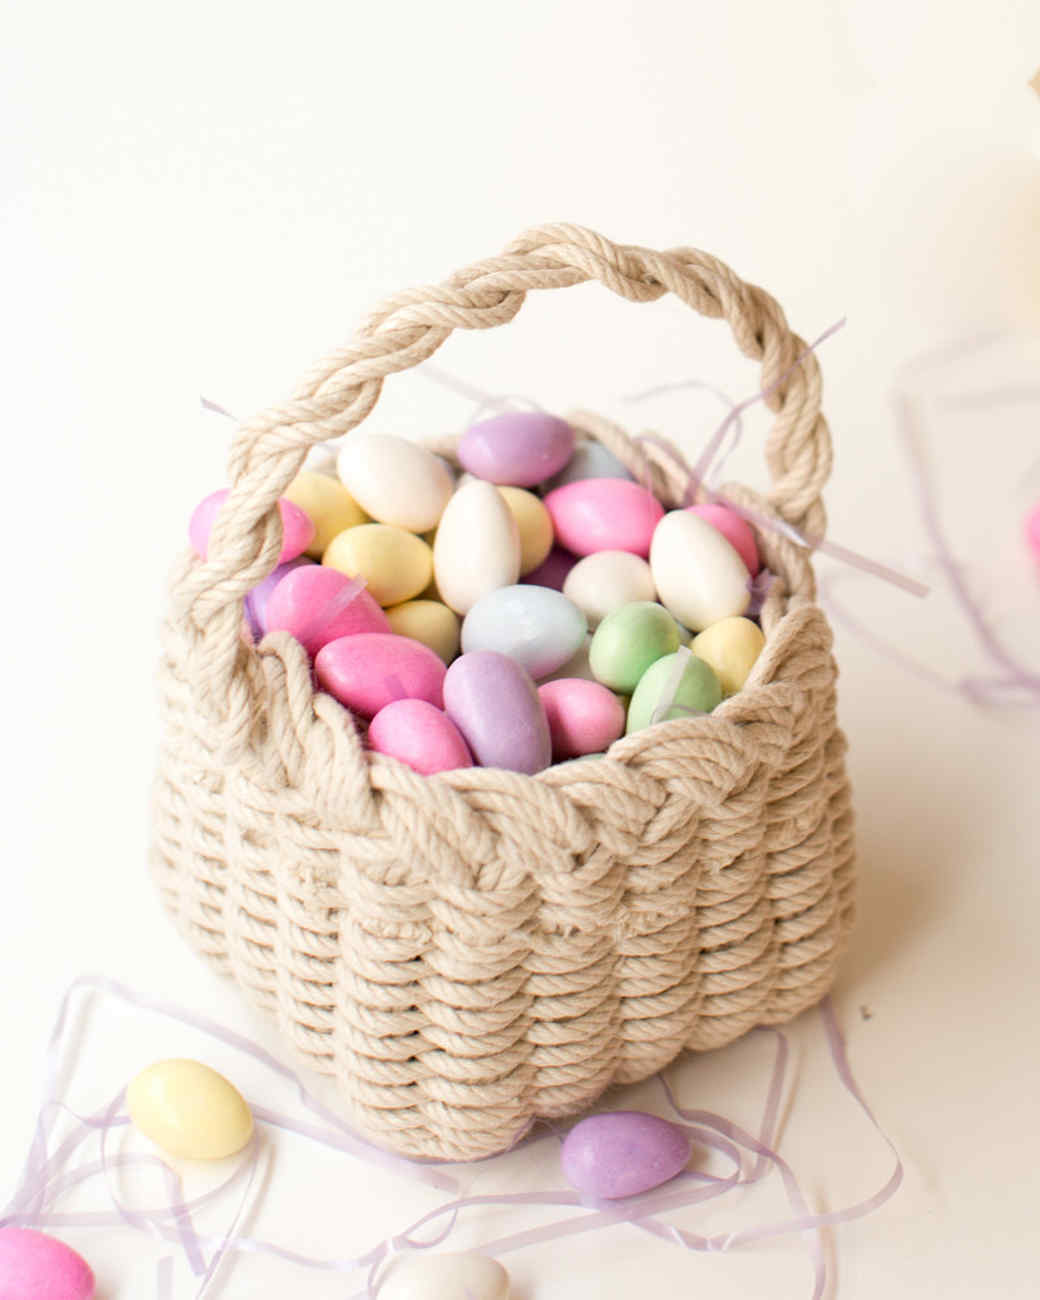 A handwoven Easter basket with pastel candy eggs.